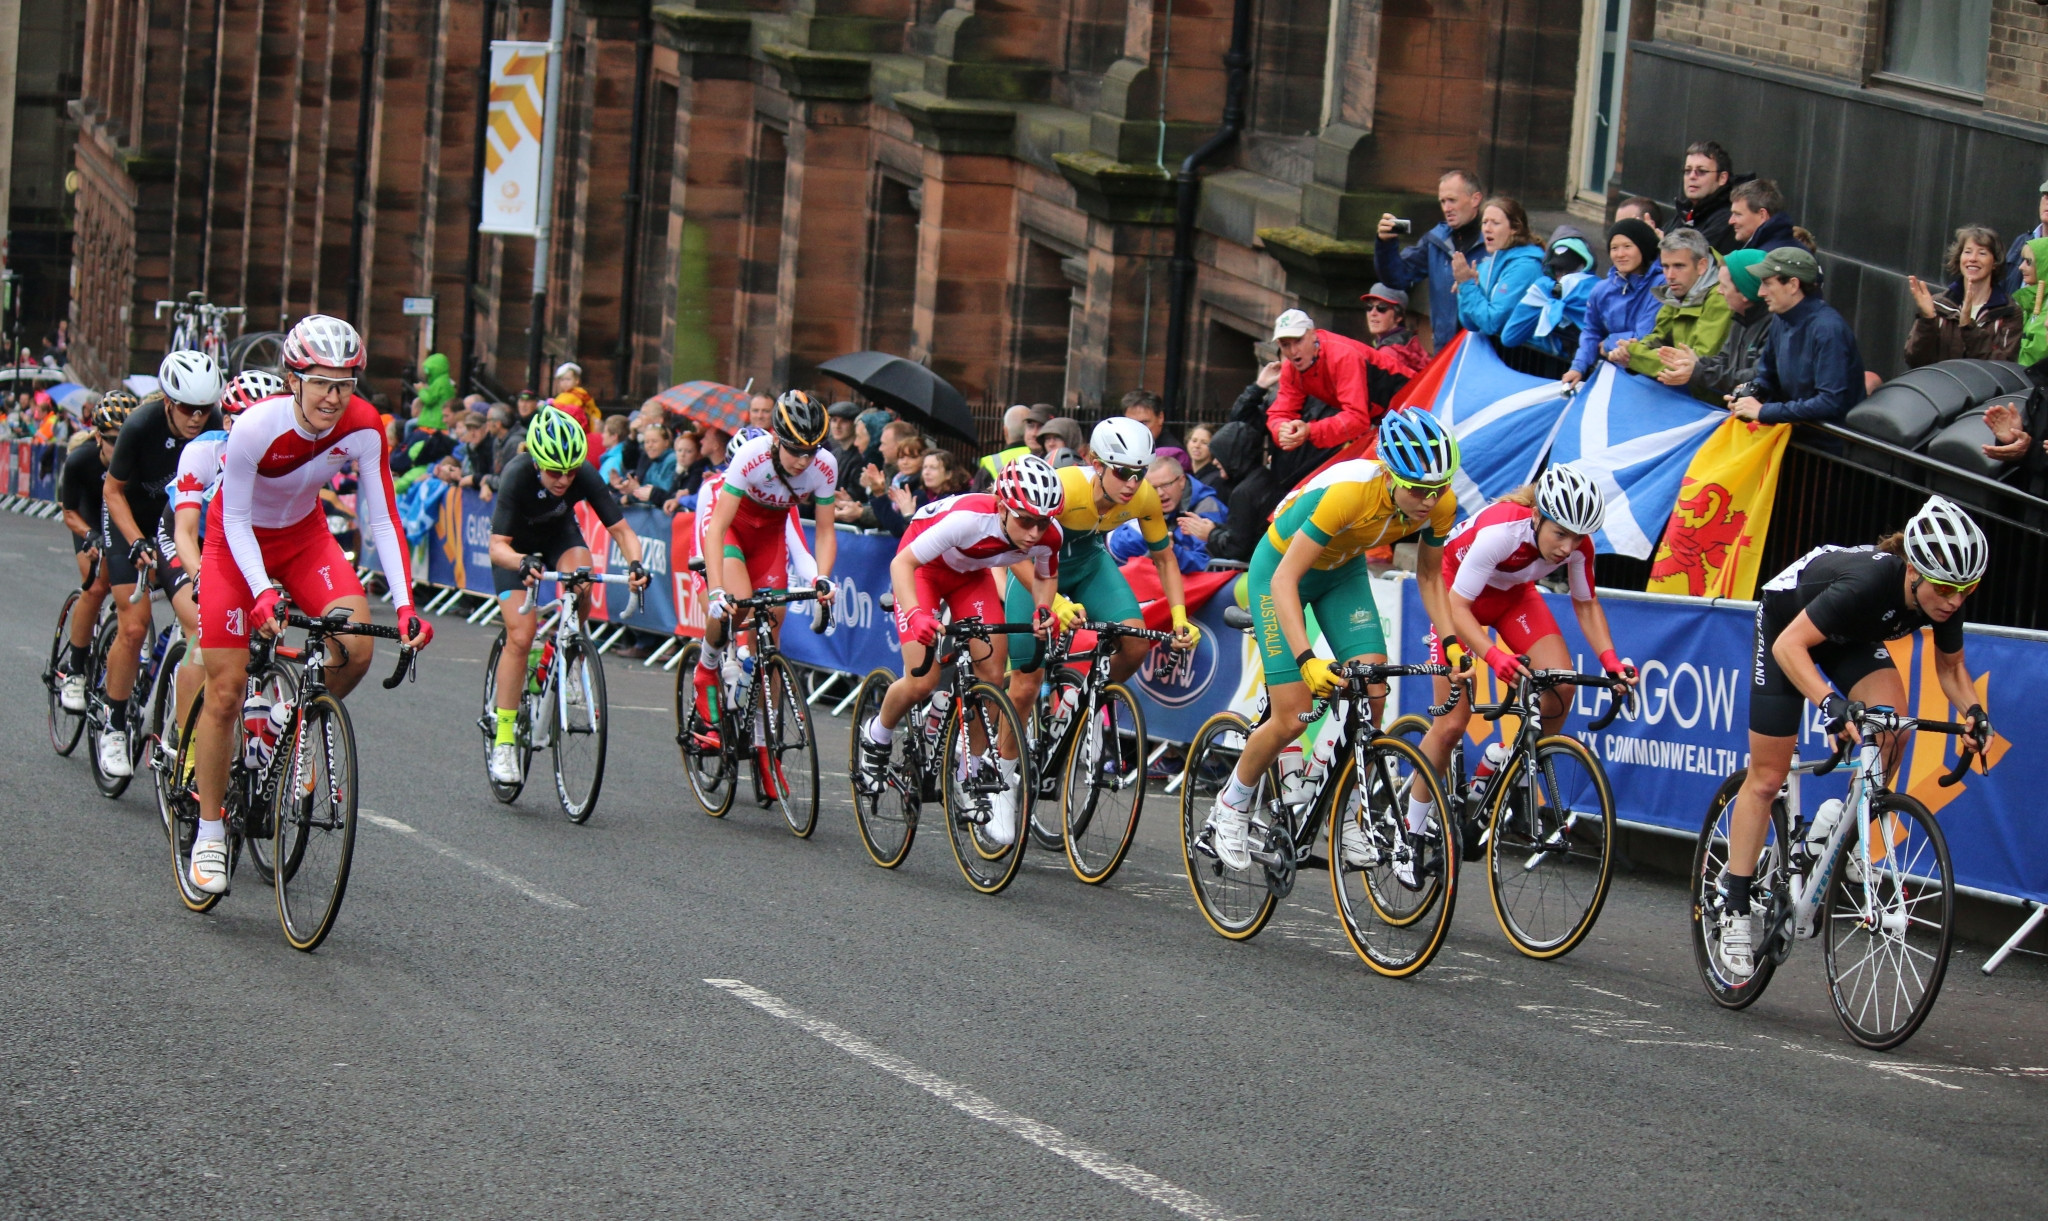 Cyclists competing at the Glasgow 2014 Commonwealth Games ©Getty Images